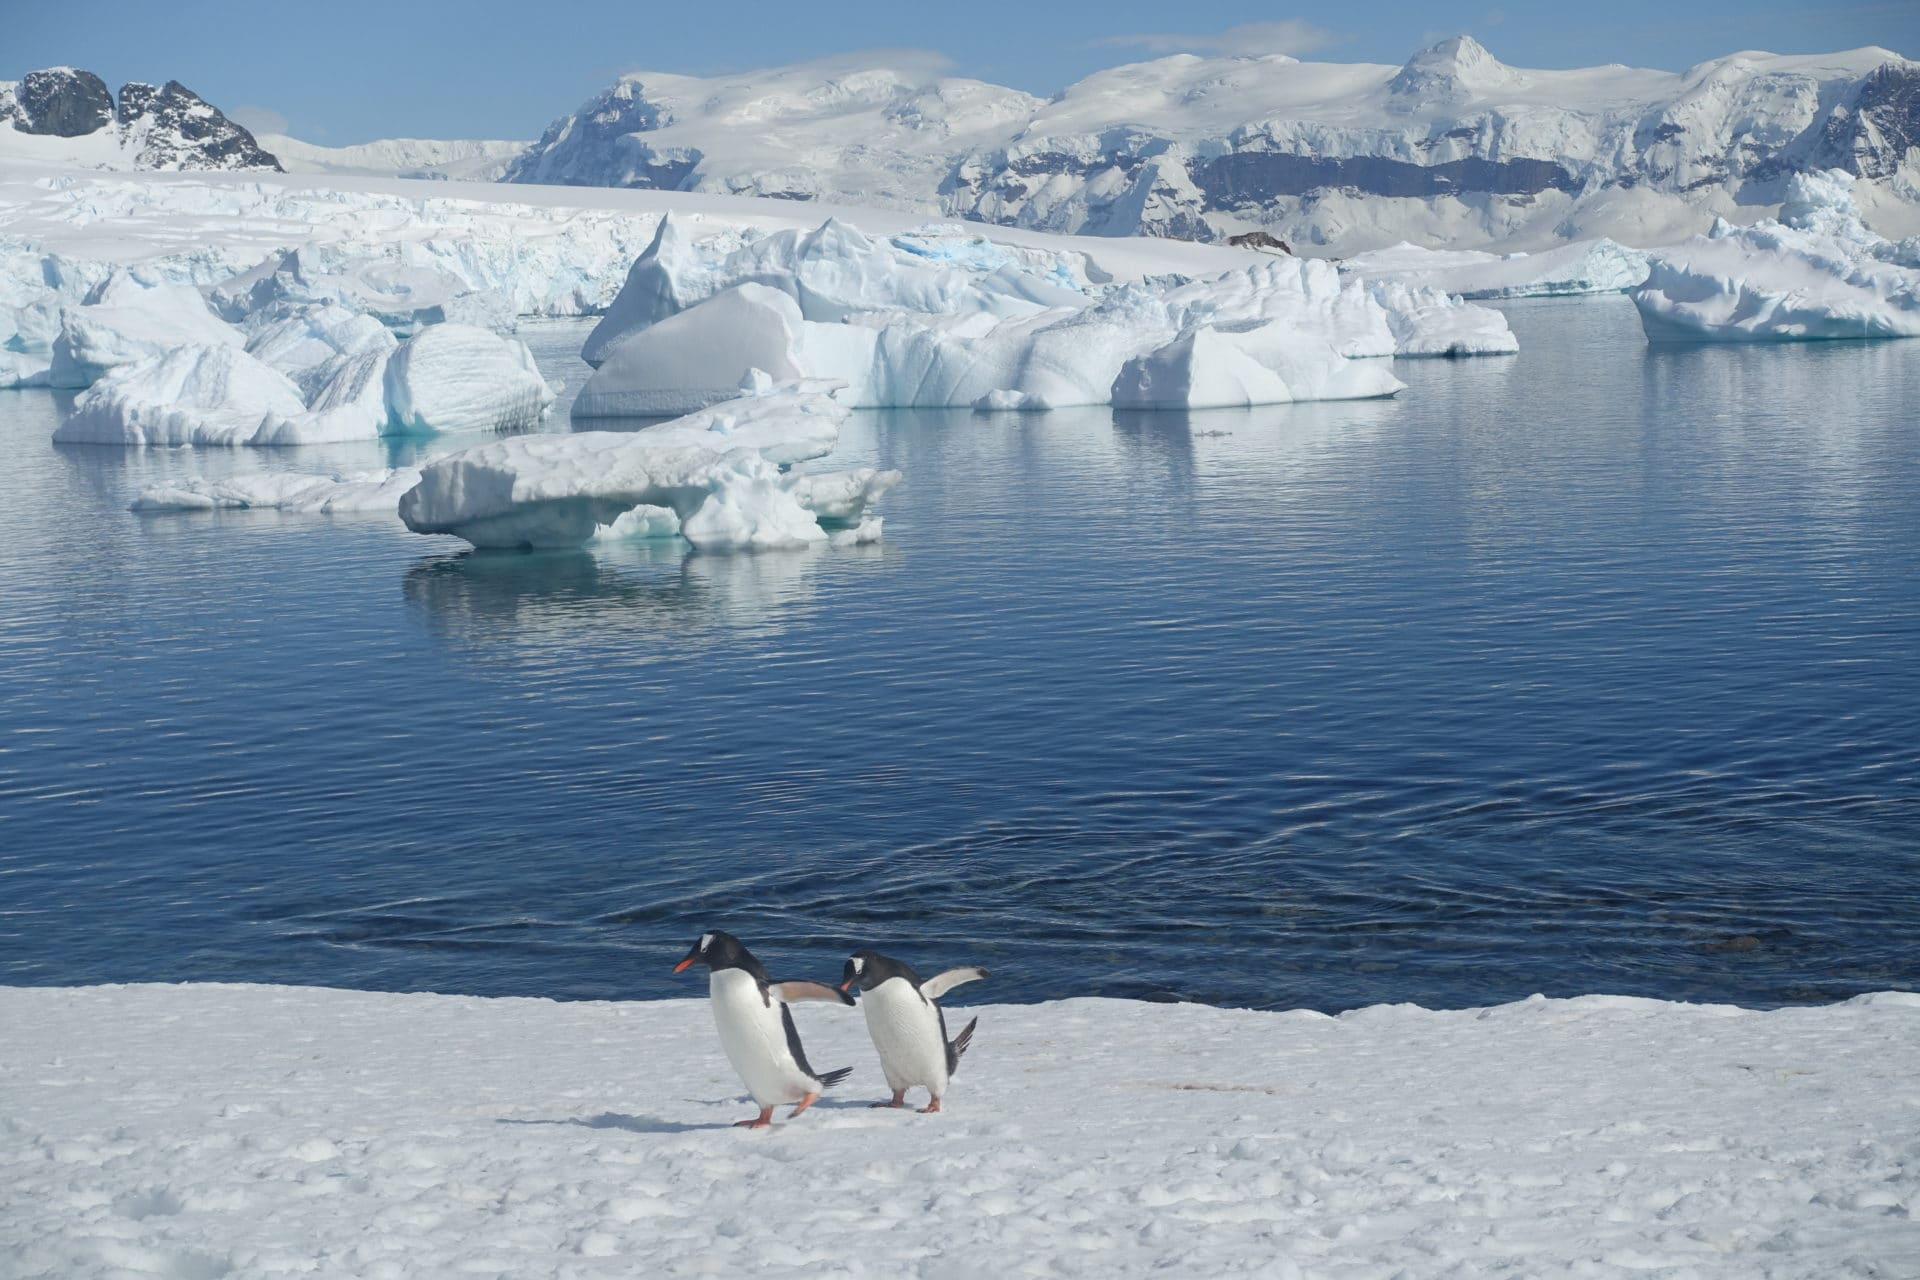 Two penguins walking